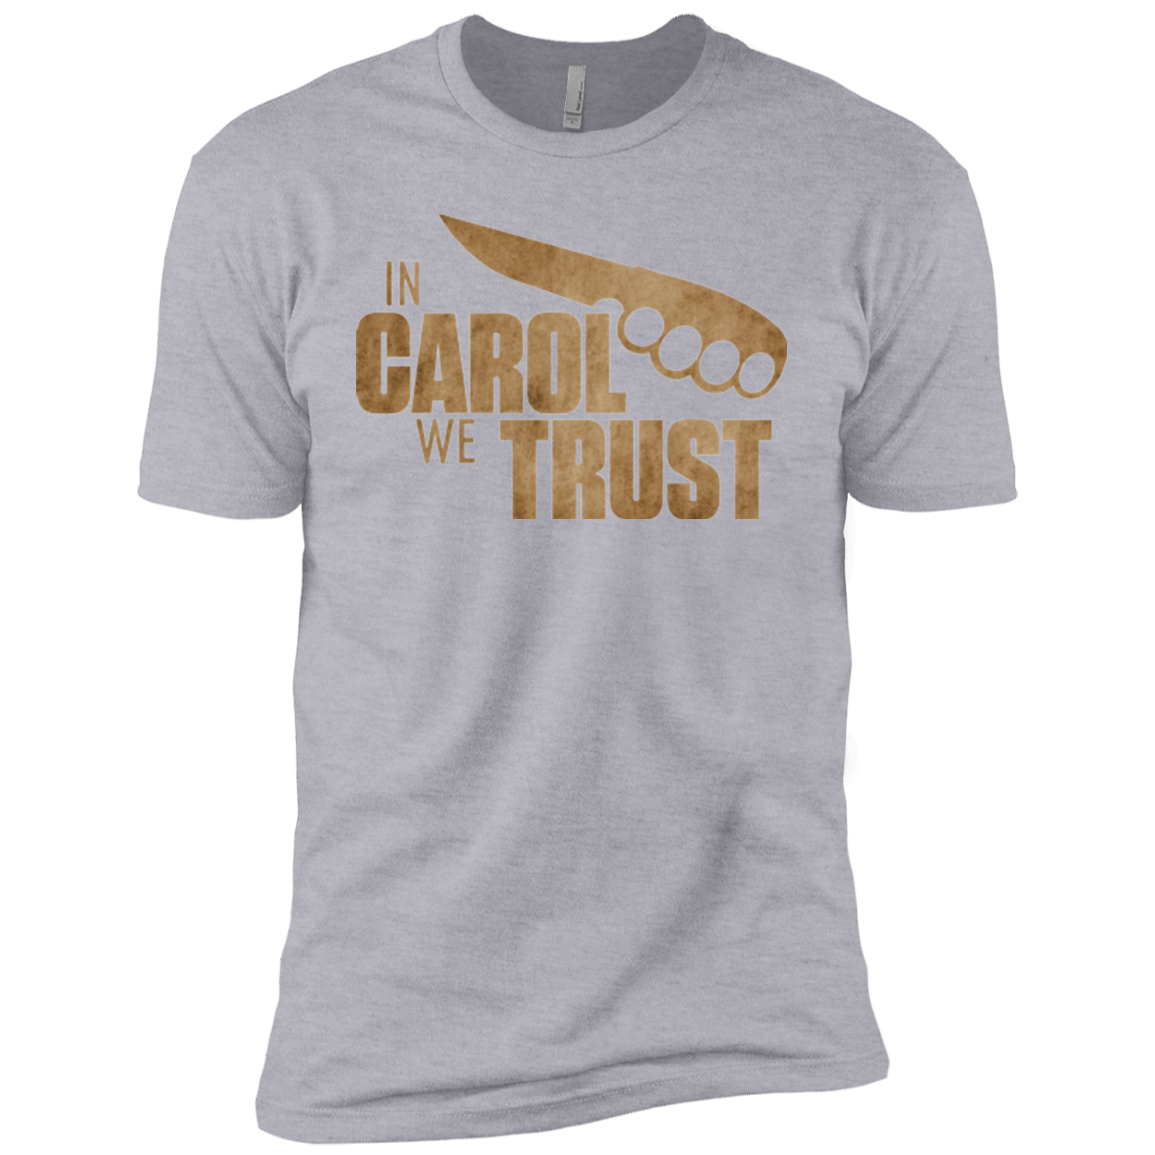 In Carol We Trust Boys Premium T-Shirt